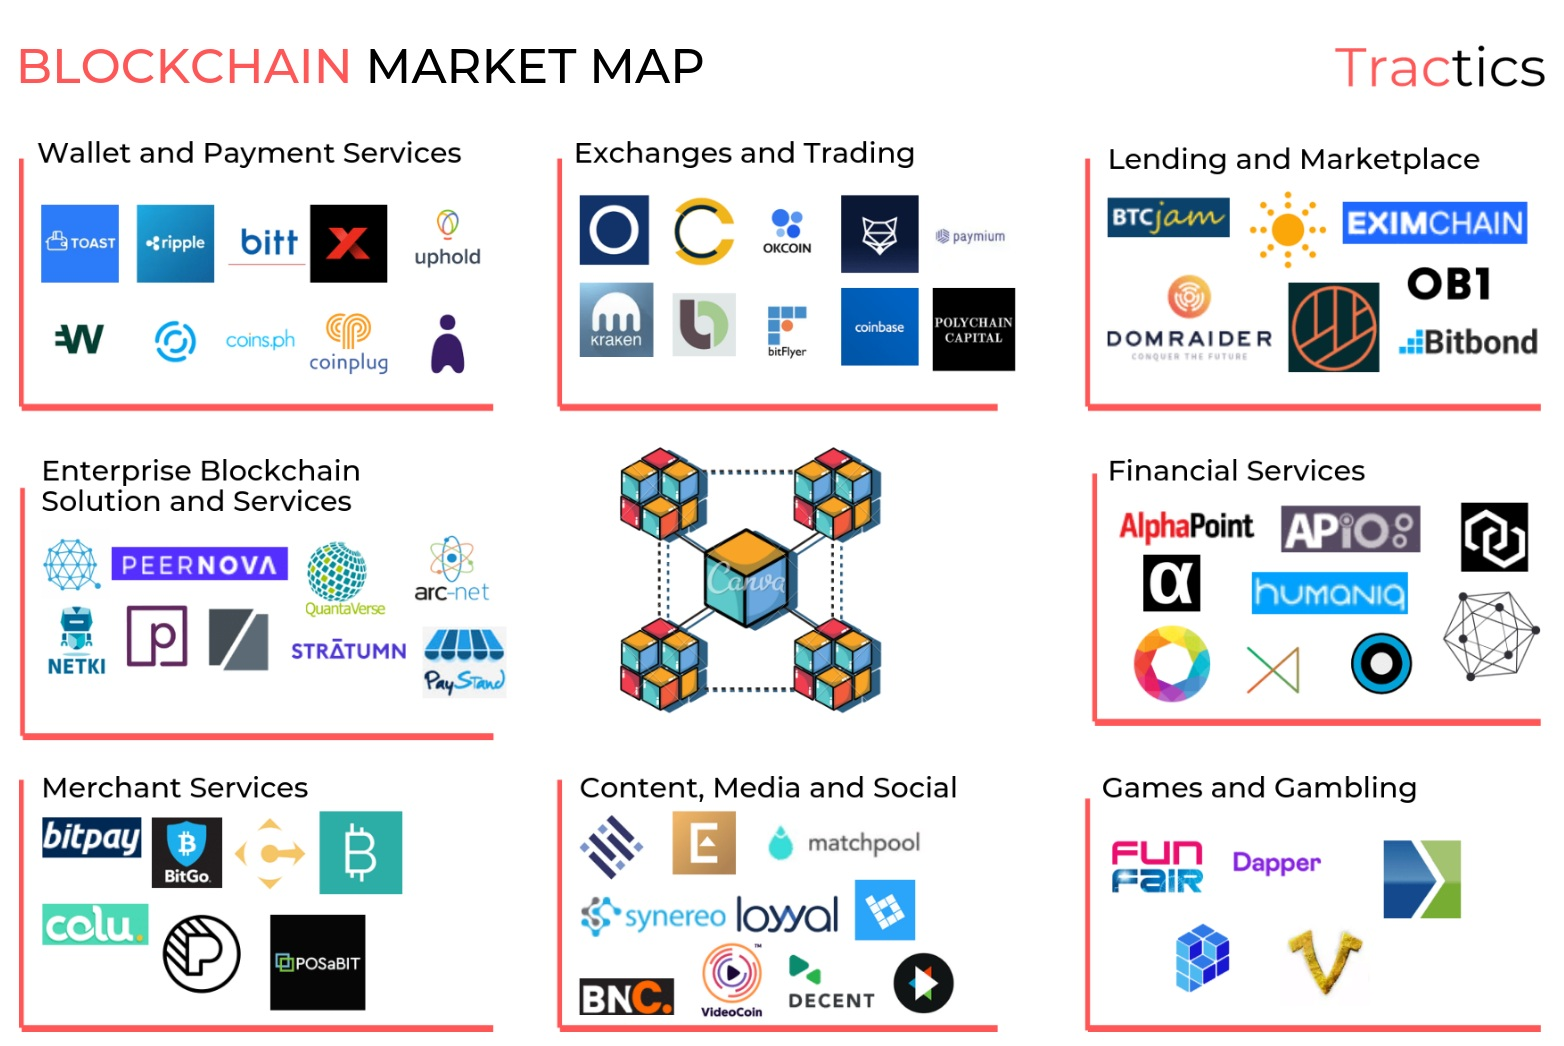 Blockchain Market Map